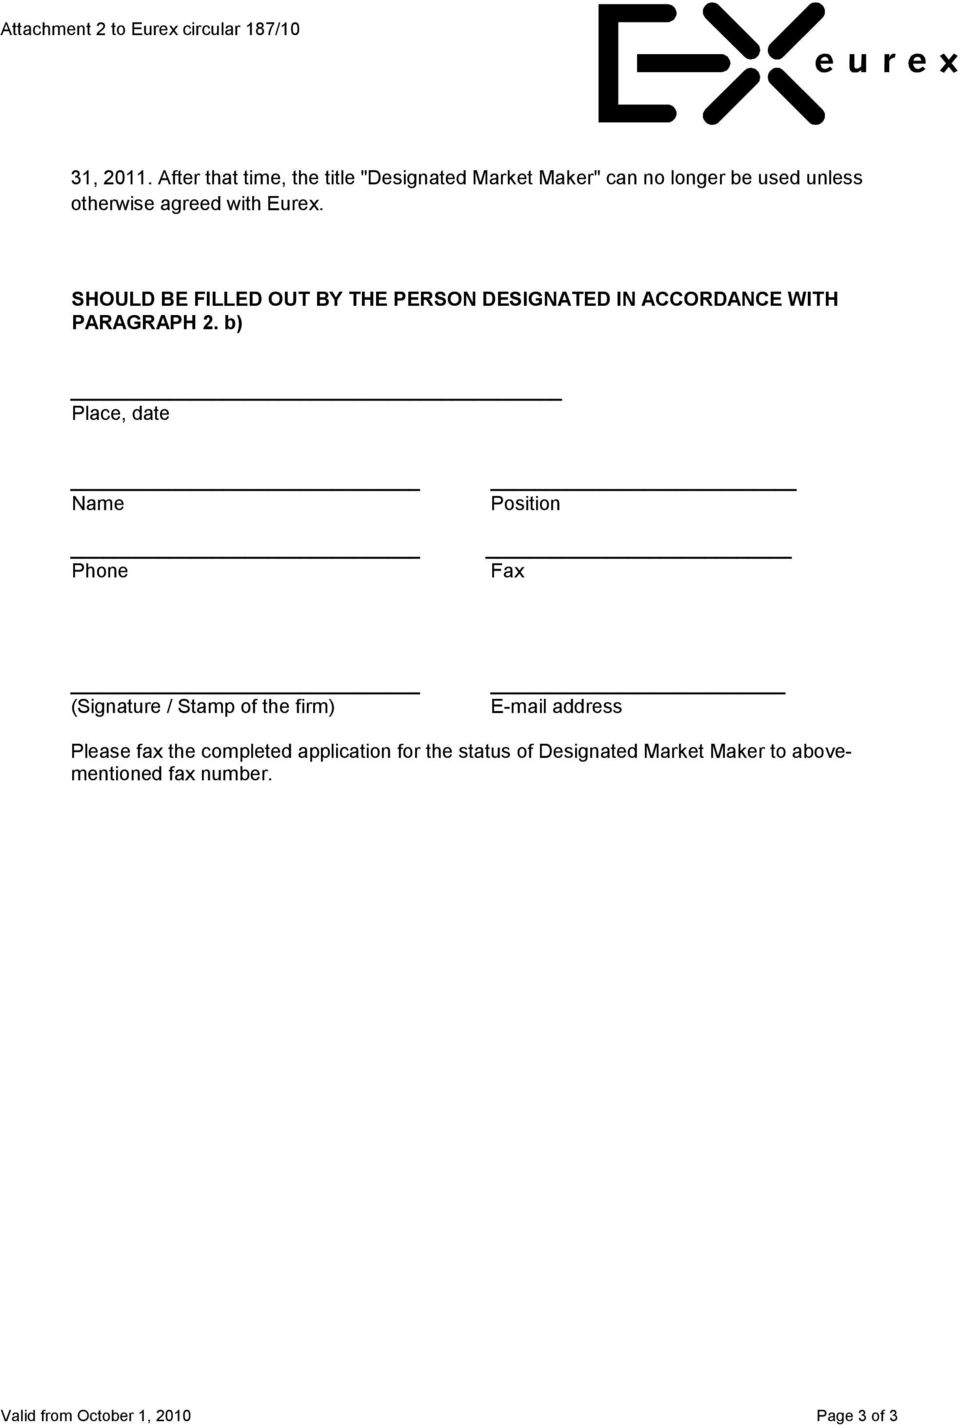 SHOULD BE FILLED OUT BY THE PERSON DESIGNATED IN ACCORDANCE WITH PARAGRAPH 2.